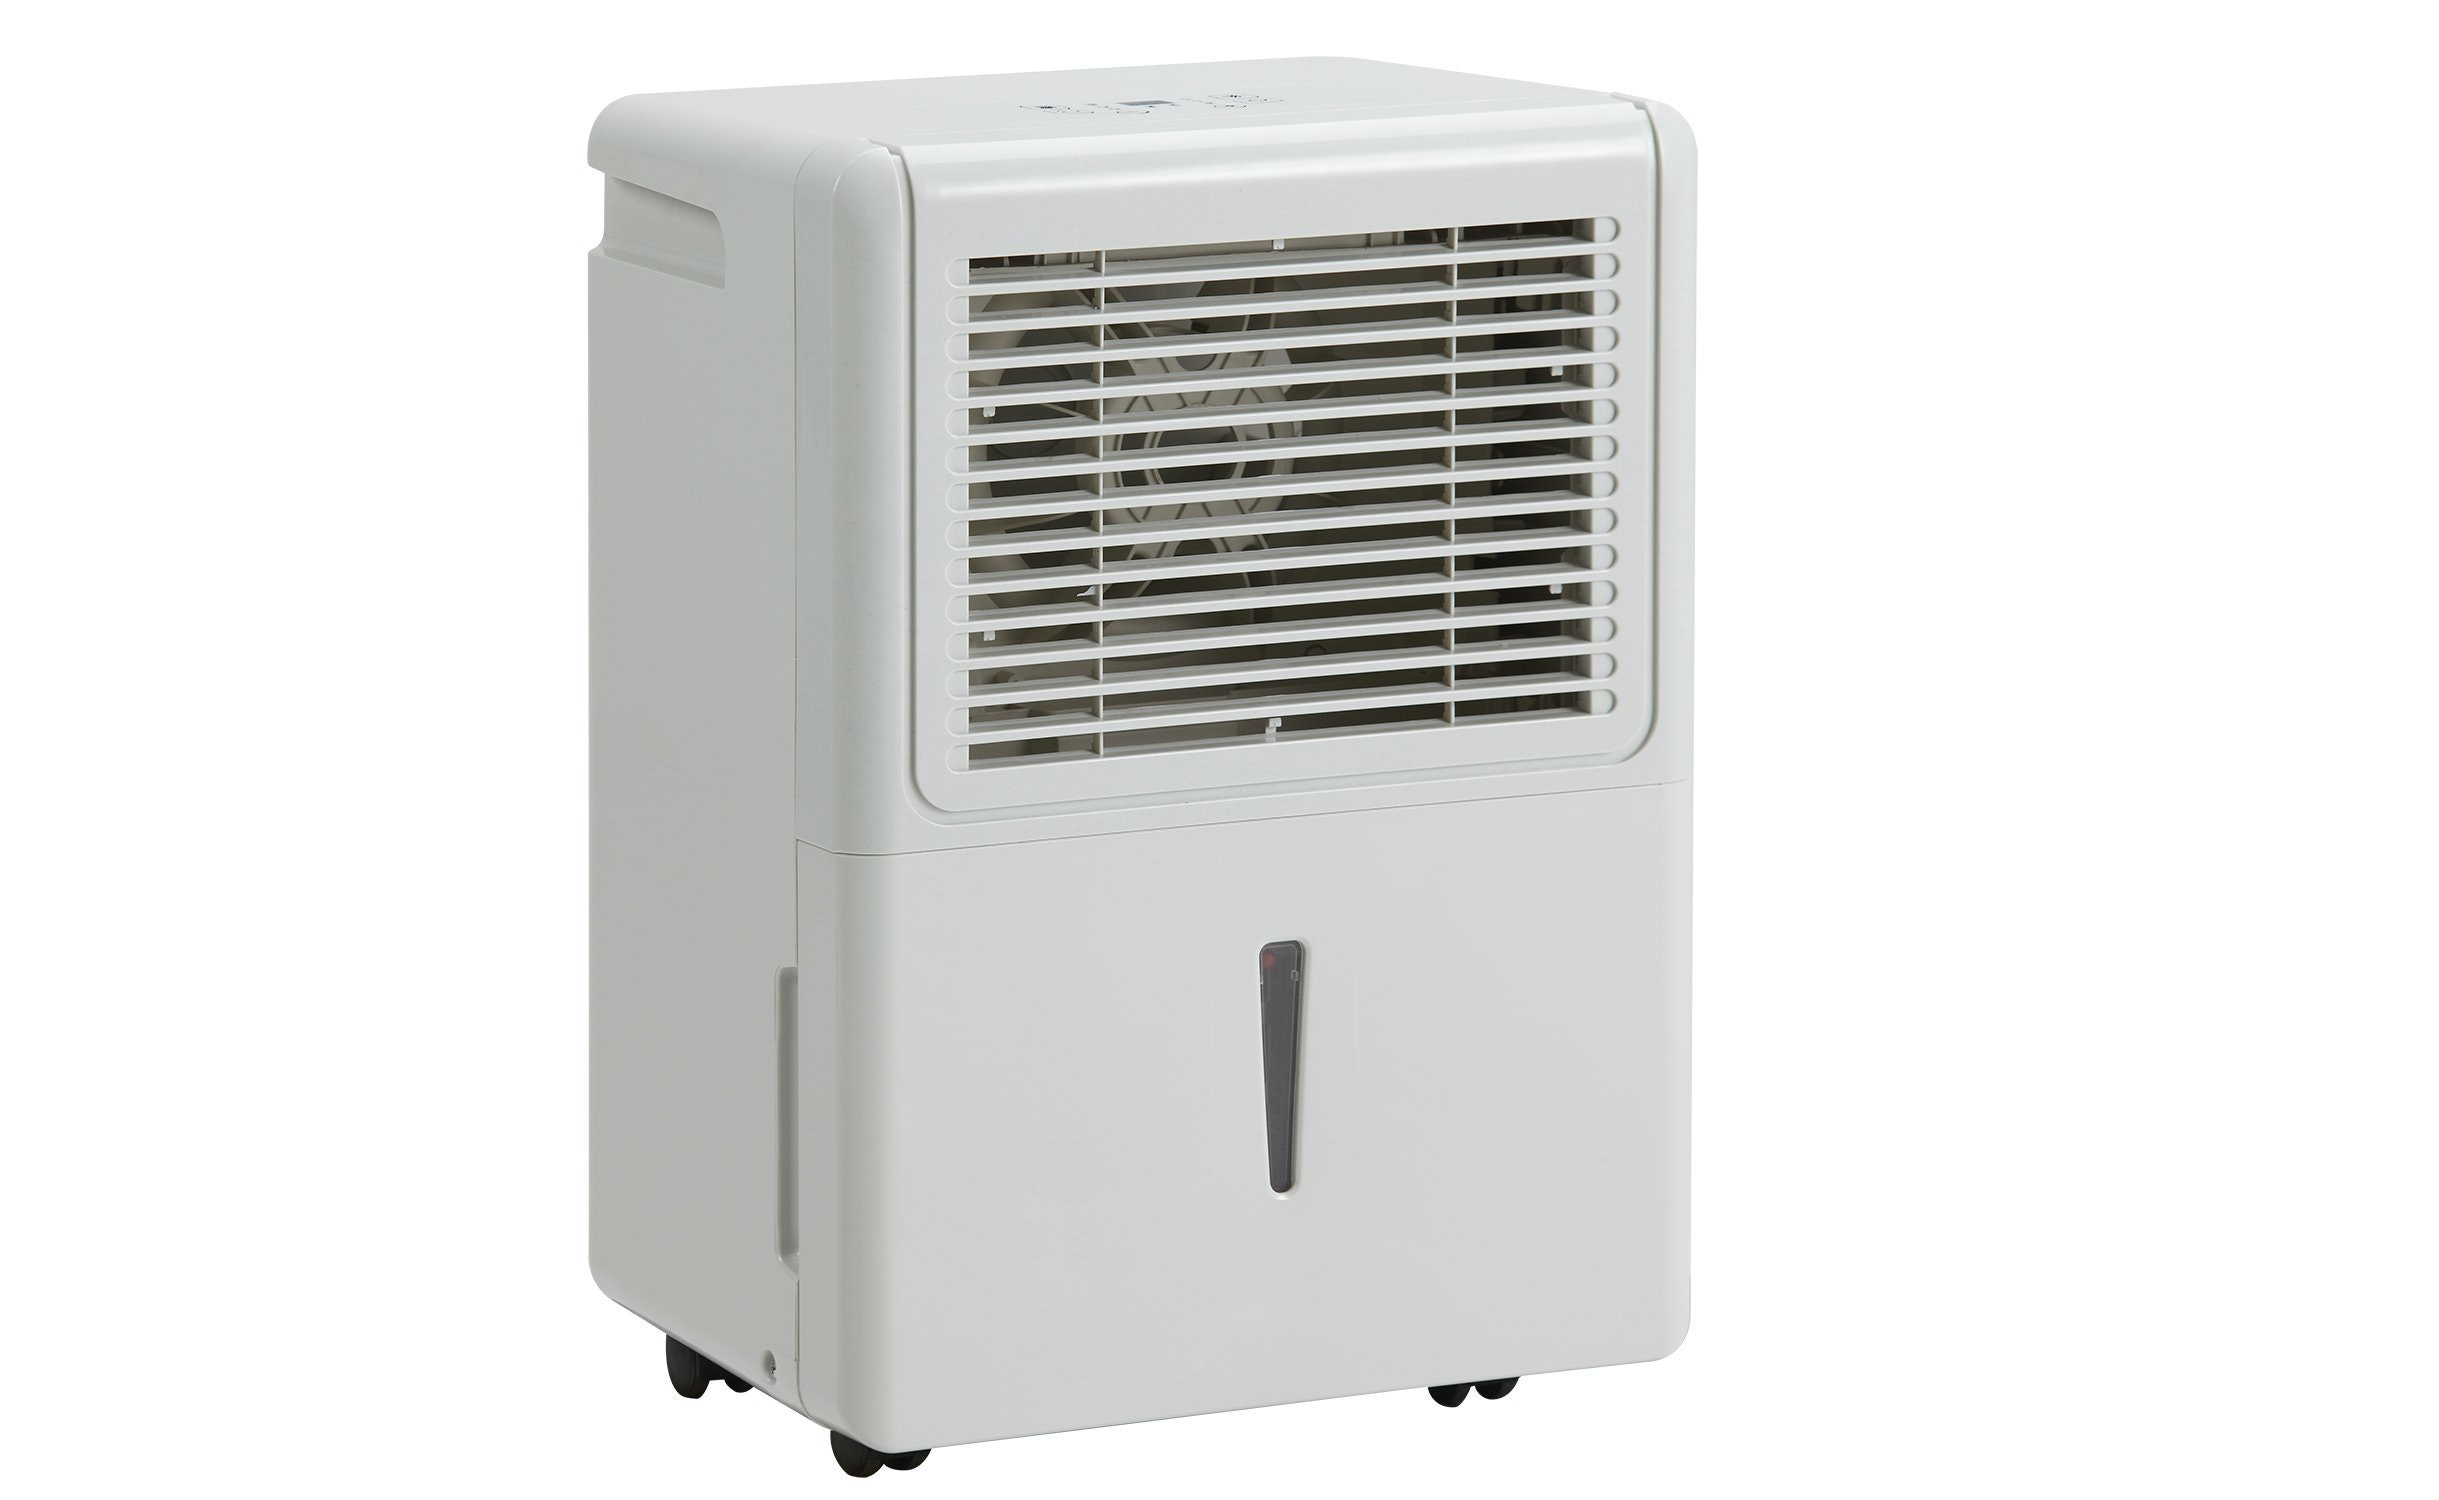 Danby Dehumidifier At Walmart the 5 quietest dehumidifiers